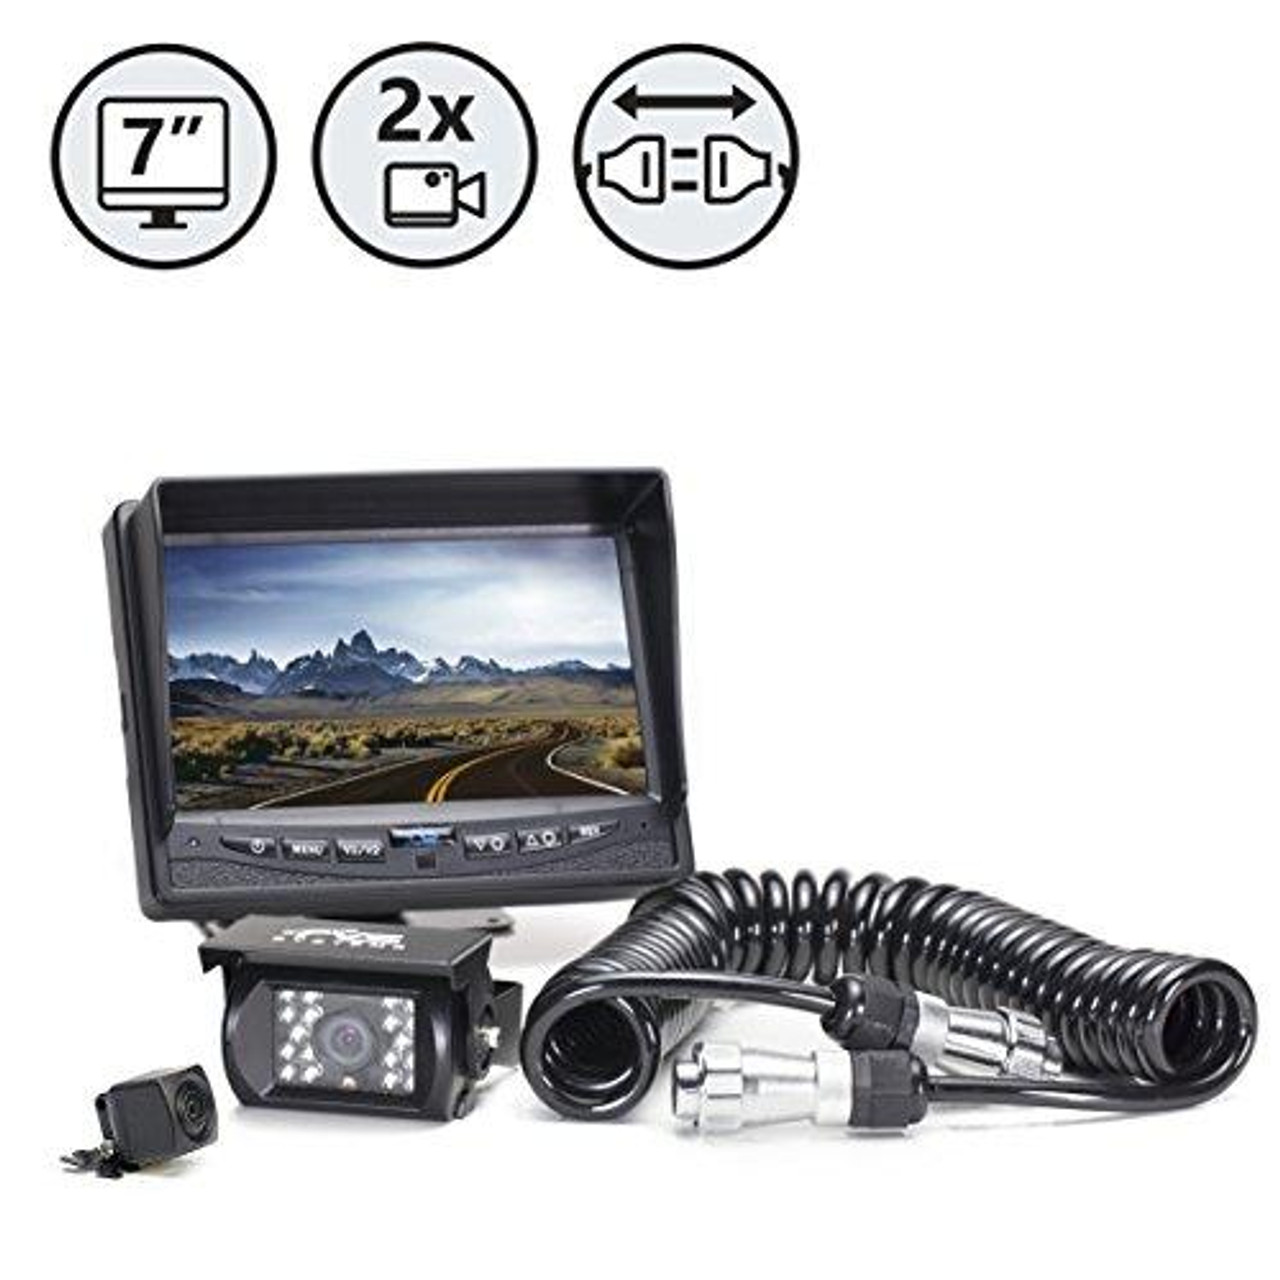 "7"" Display, Backup Camera, Surface Mount Backup Camera, Power Harness, Quick Connect/Disconnect Kit, 33ft Cable"